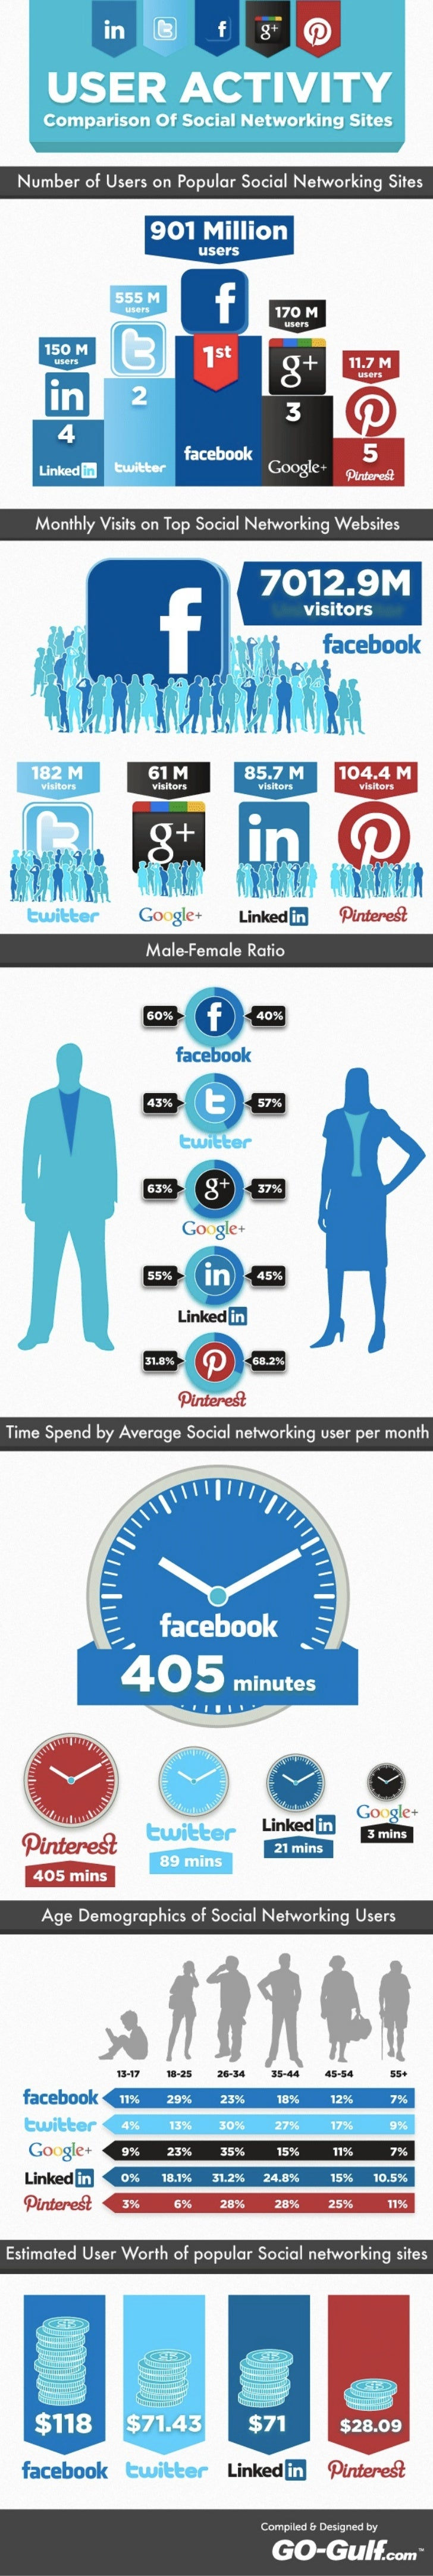 2012 Social Networking Users Infographic